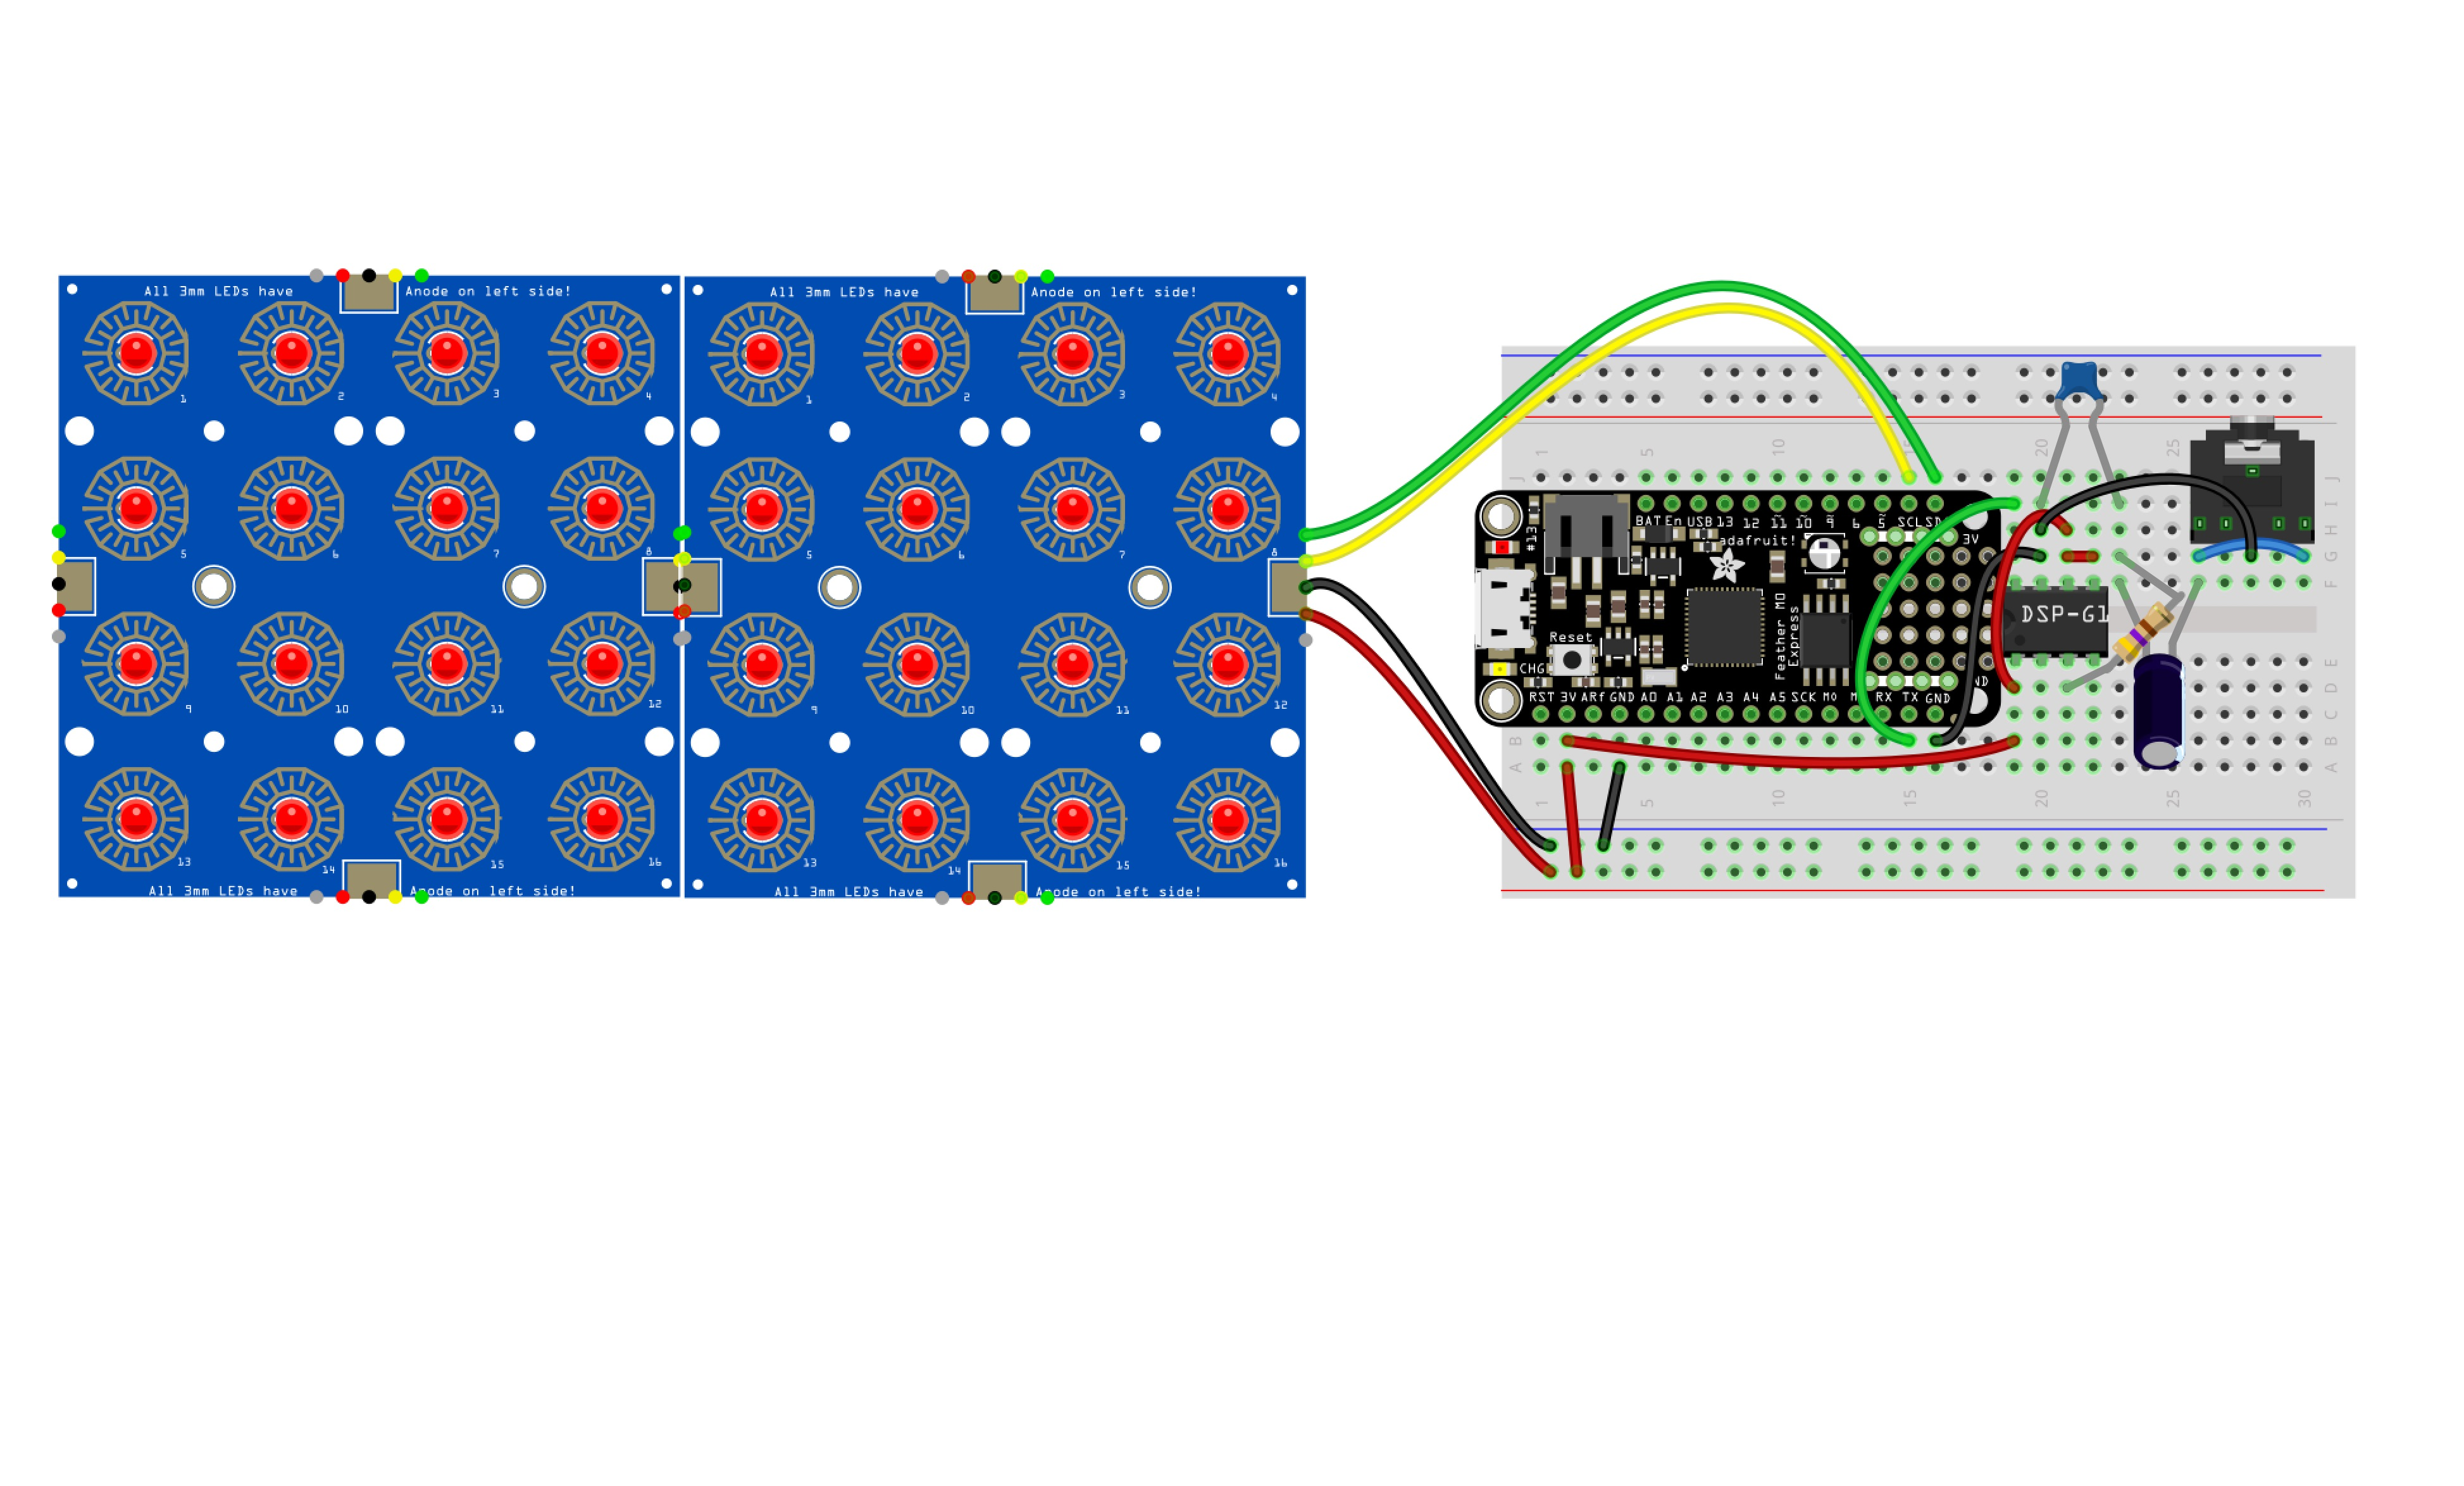 microcontrollers_Feather_Trellisx2_DSP-G1_SynthBB.jpg